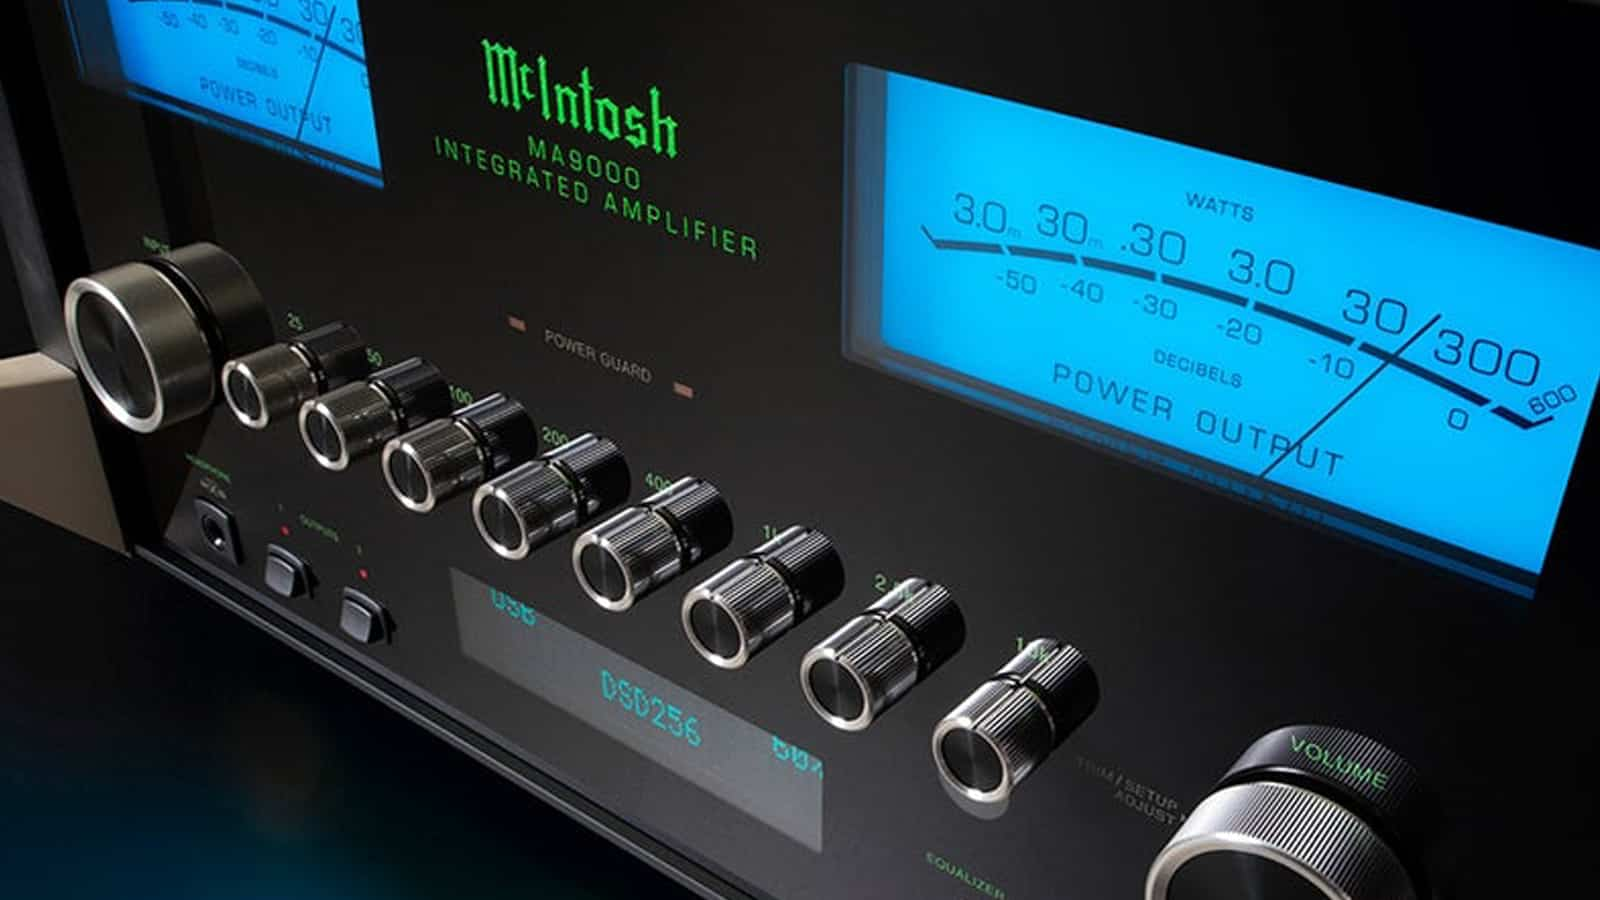 New custom install products from McIntosh